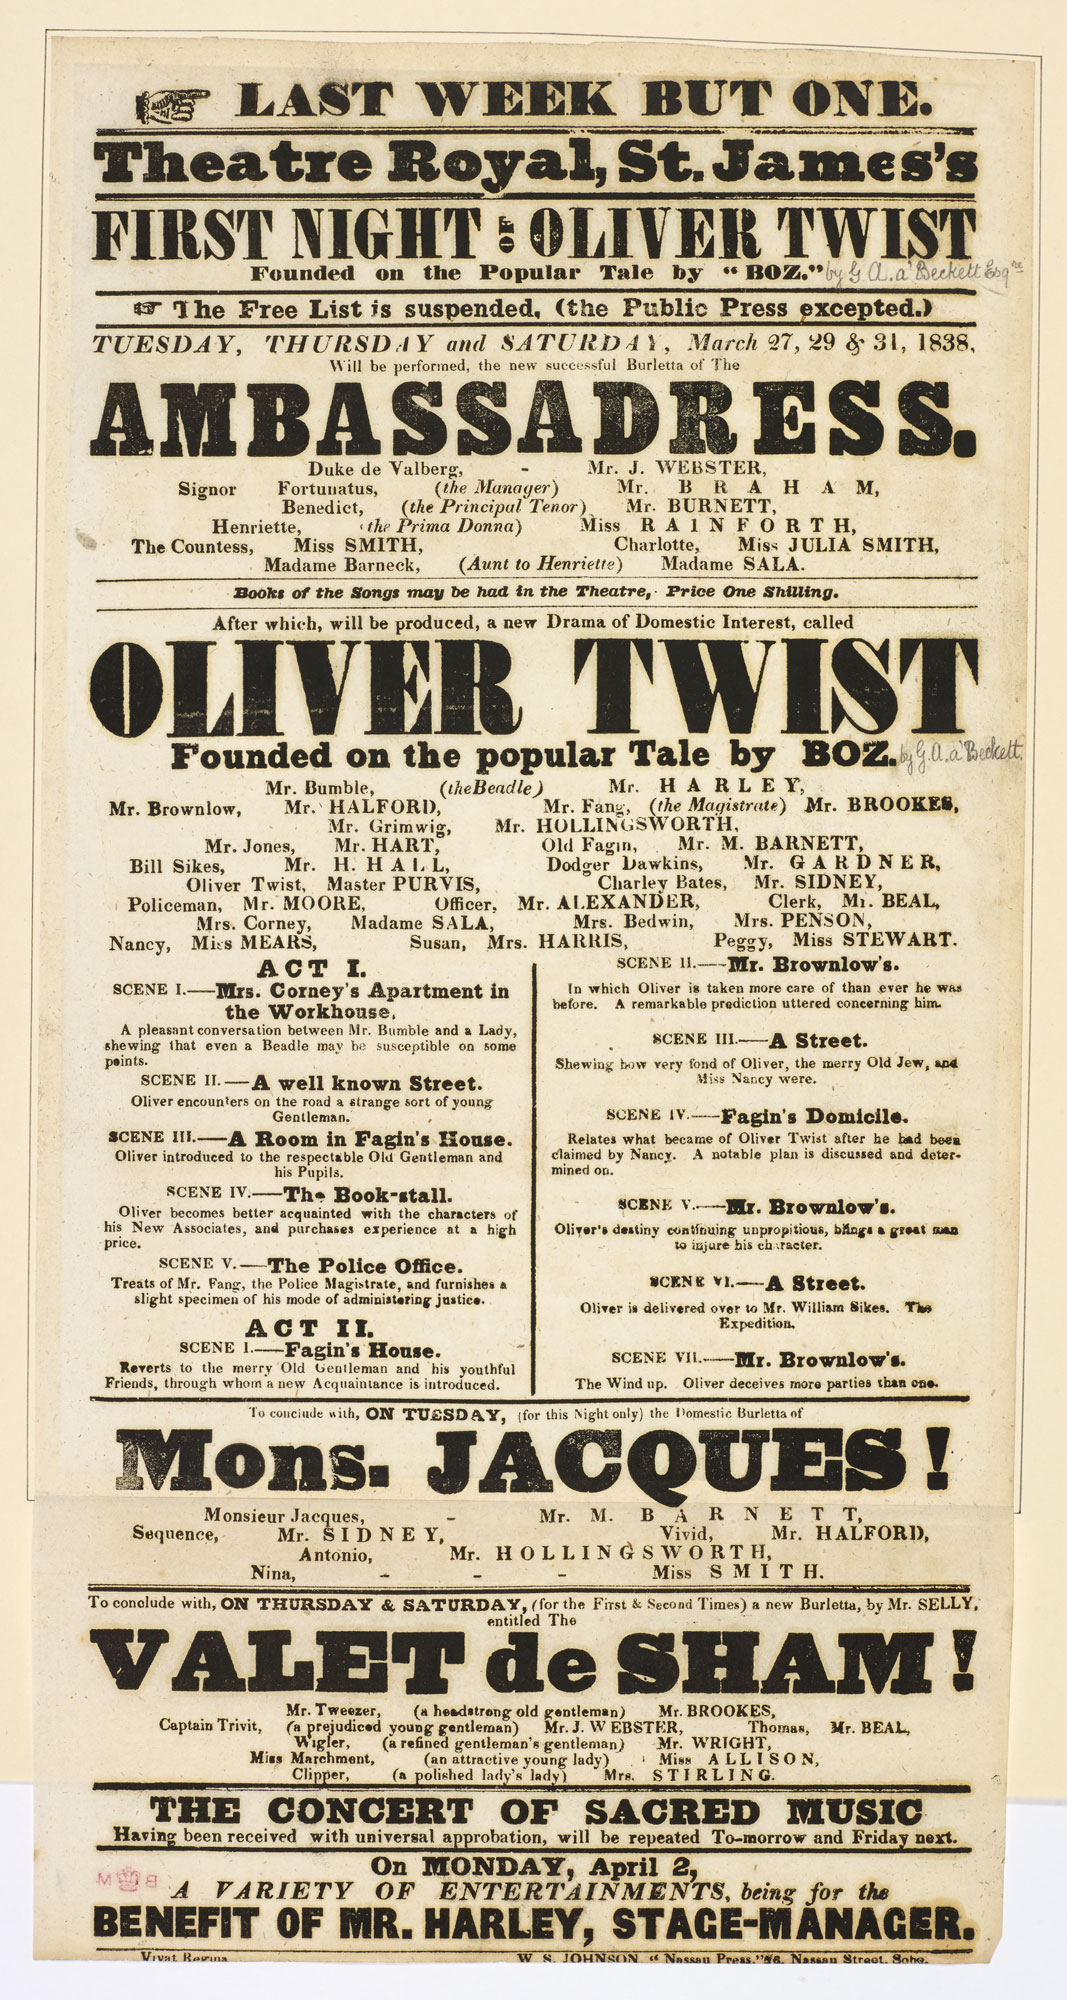 Playbill for the The Theatre Royal St. James's advertising the first night of 'Oliver Twist' [page: 101]